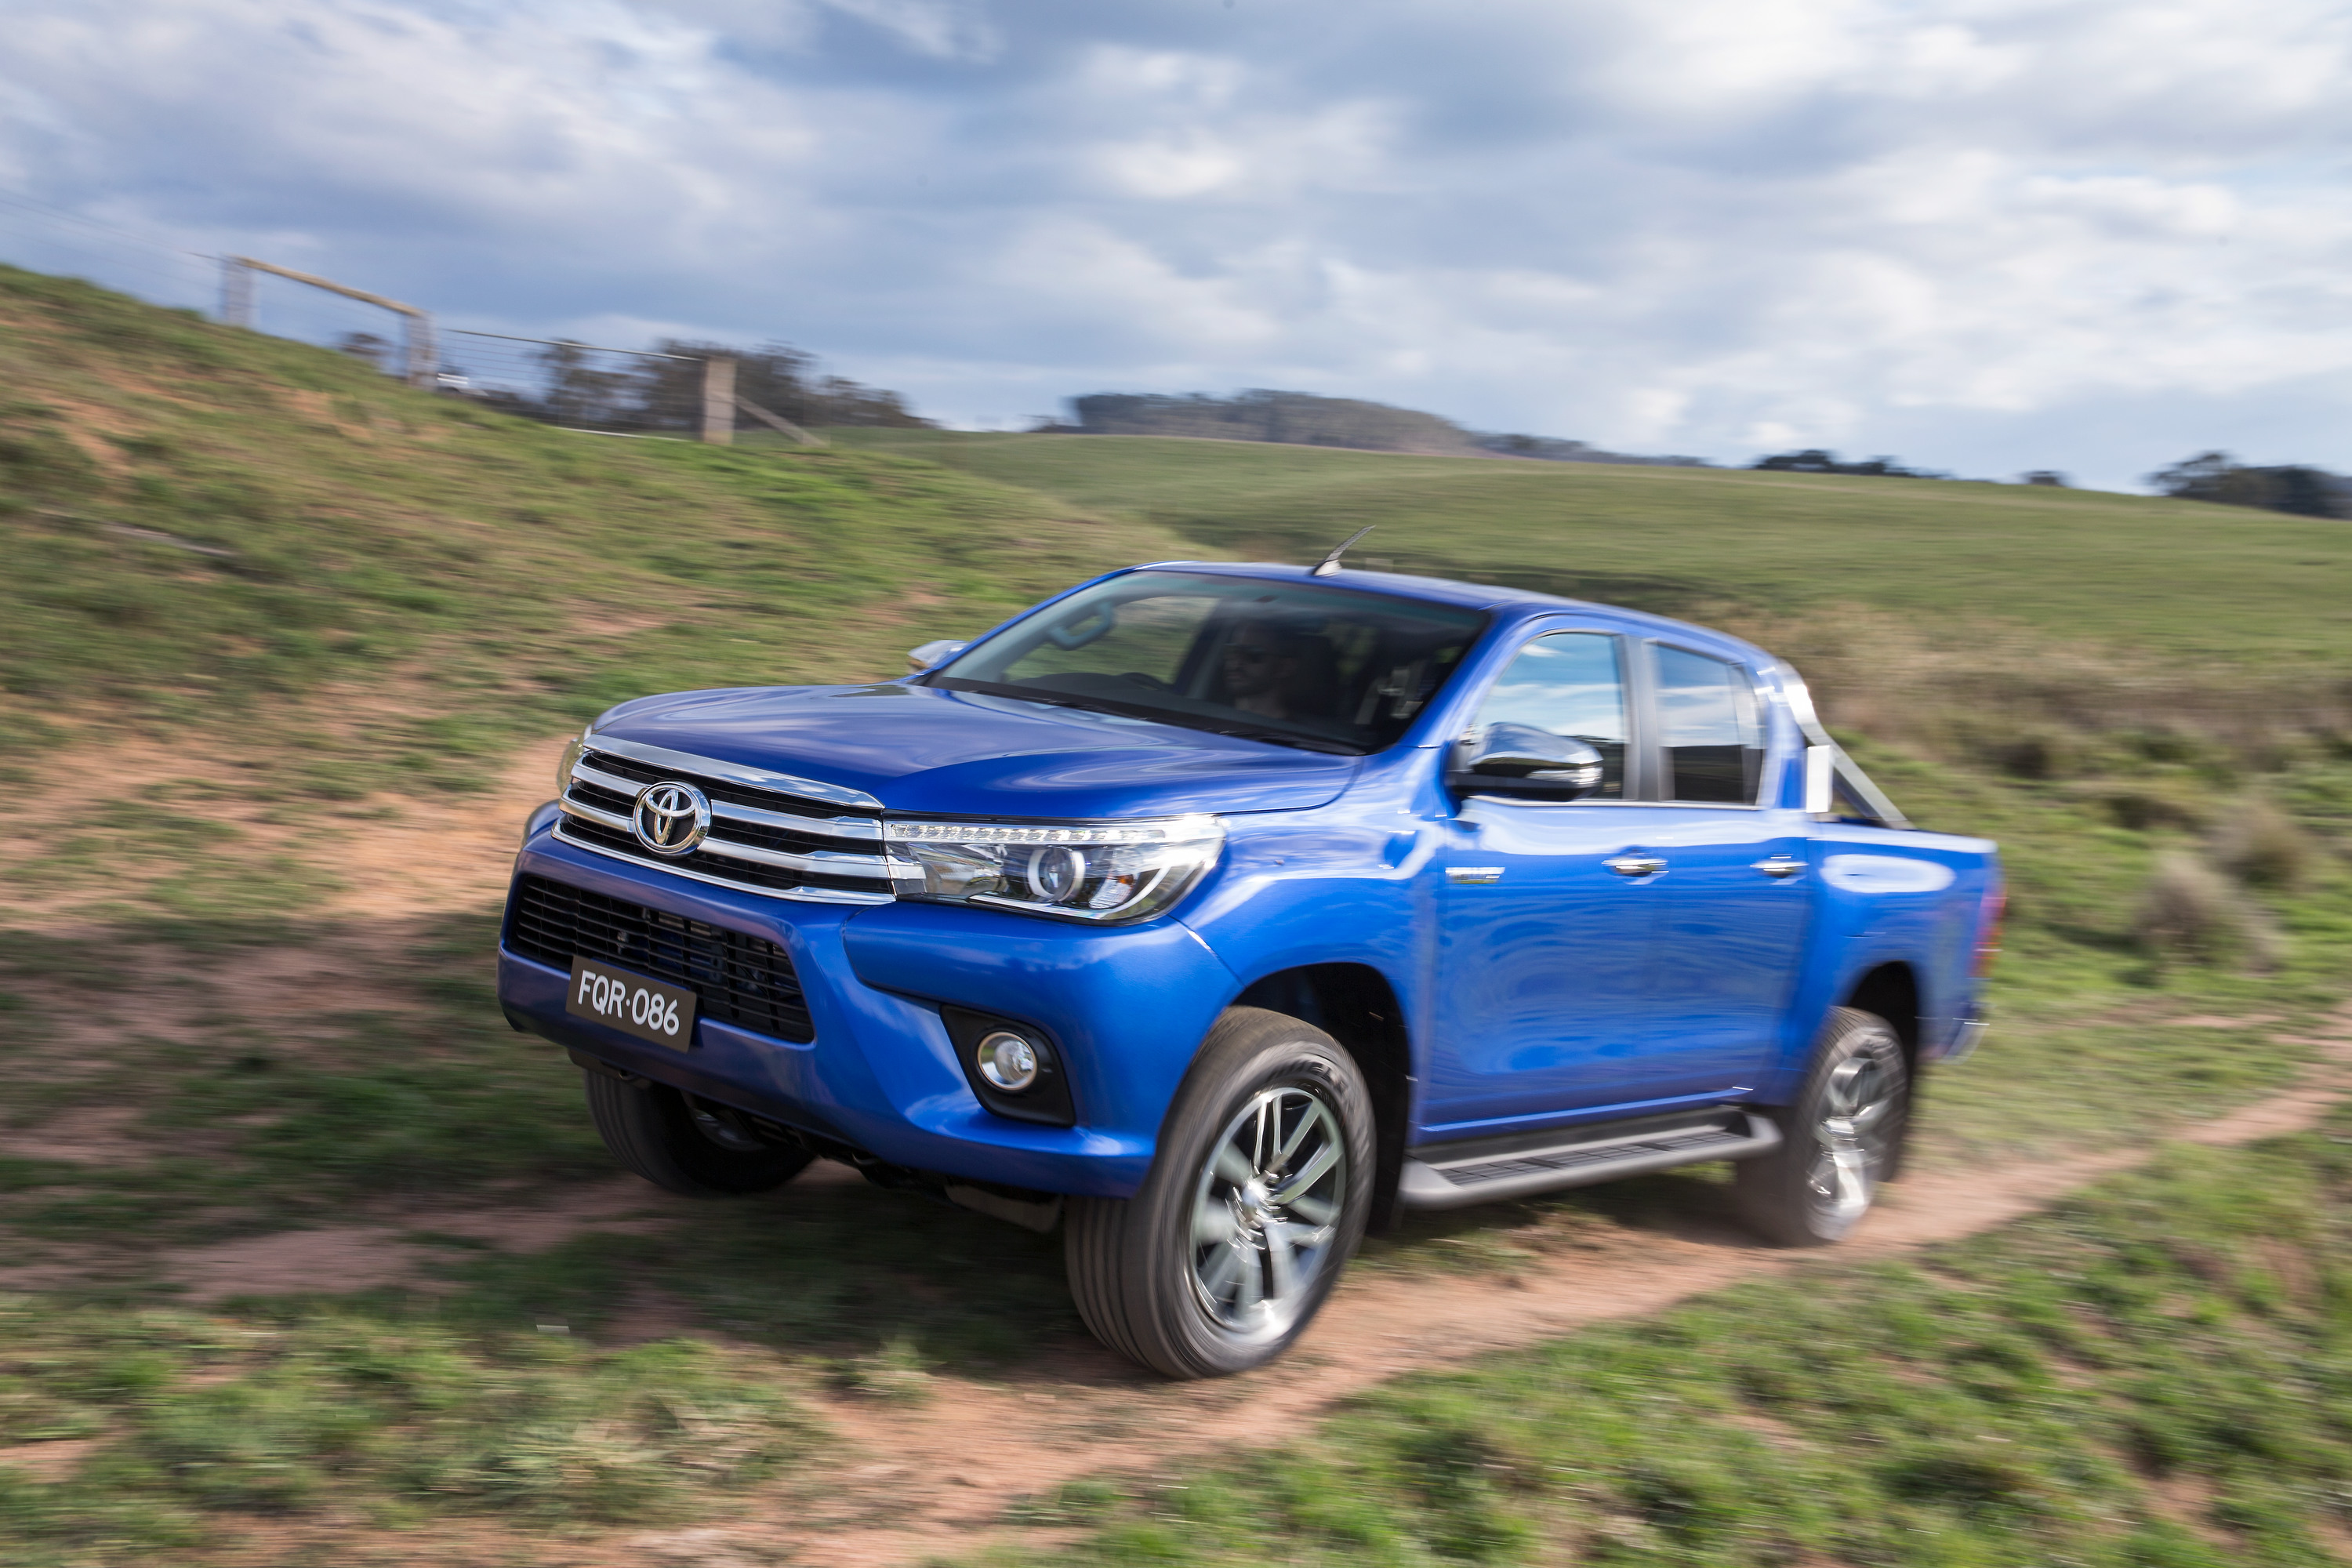 Cool 2016 Toyota HiLux 40litre Petrol V6 Power Output To Remain Unchanged